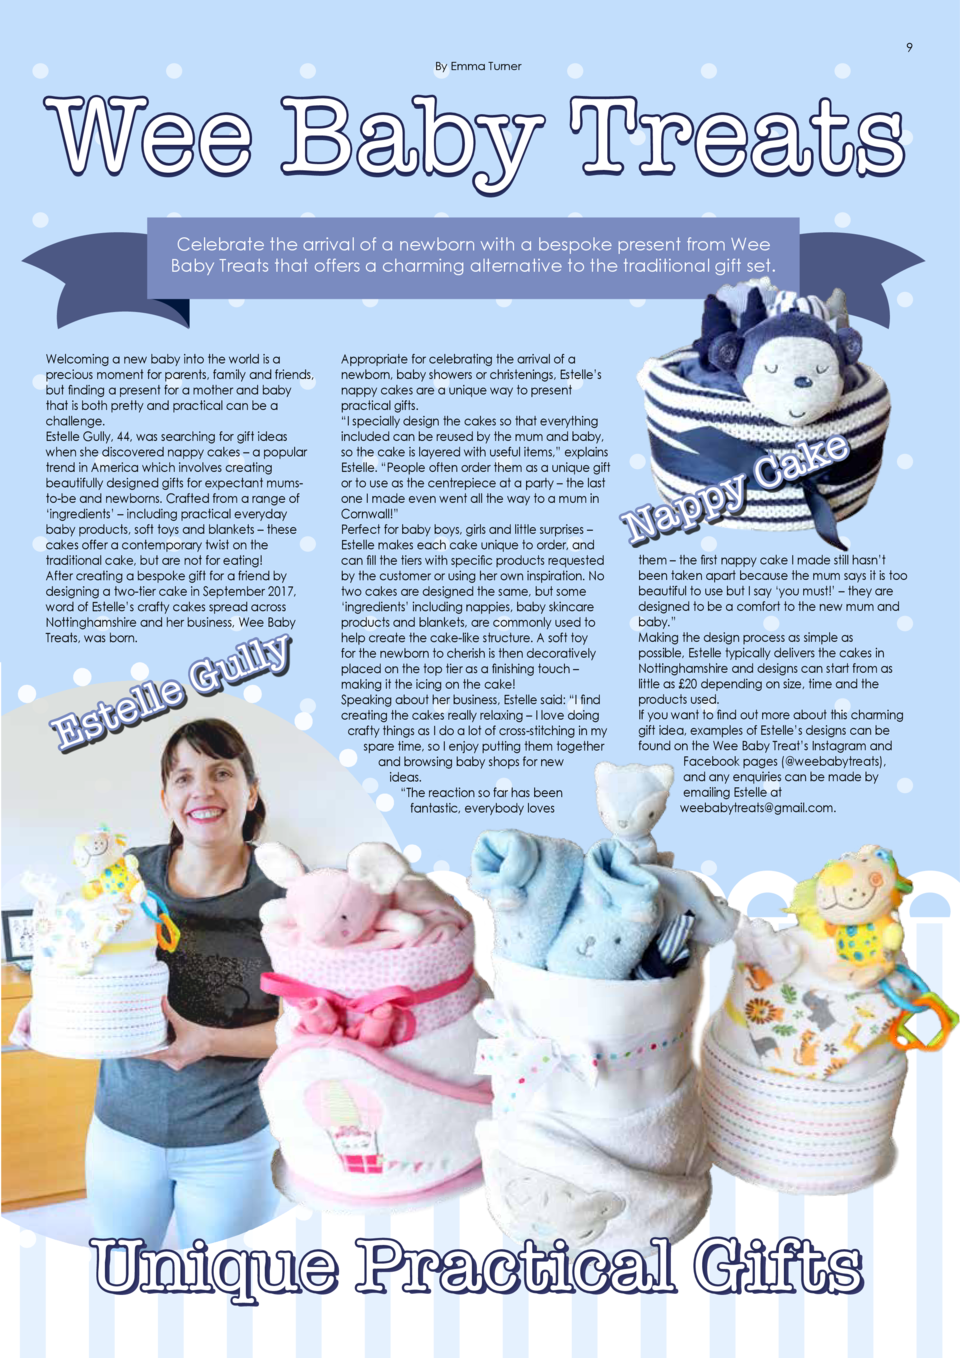 Relive the Moment TRUE REFLECTION PHOTOGRAPHY  8  9  By Emma Turner  By Emma Turner  Wee Baby Treats Celebrate the arrival...